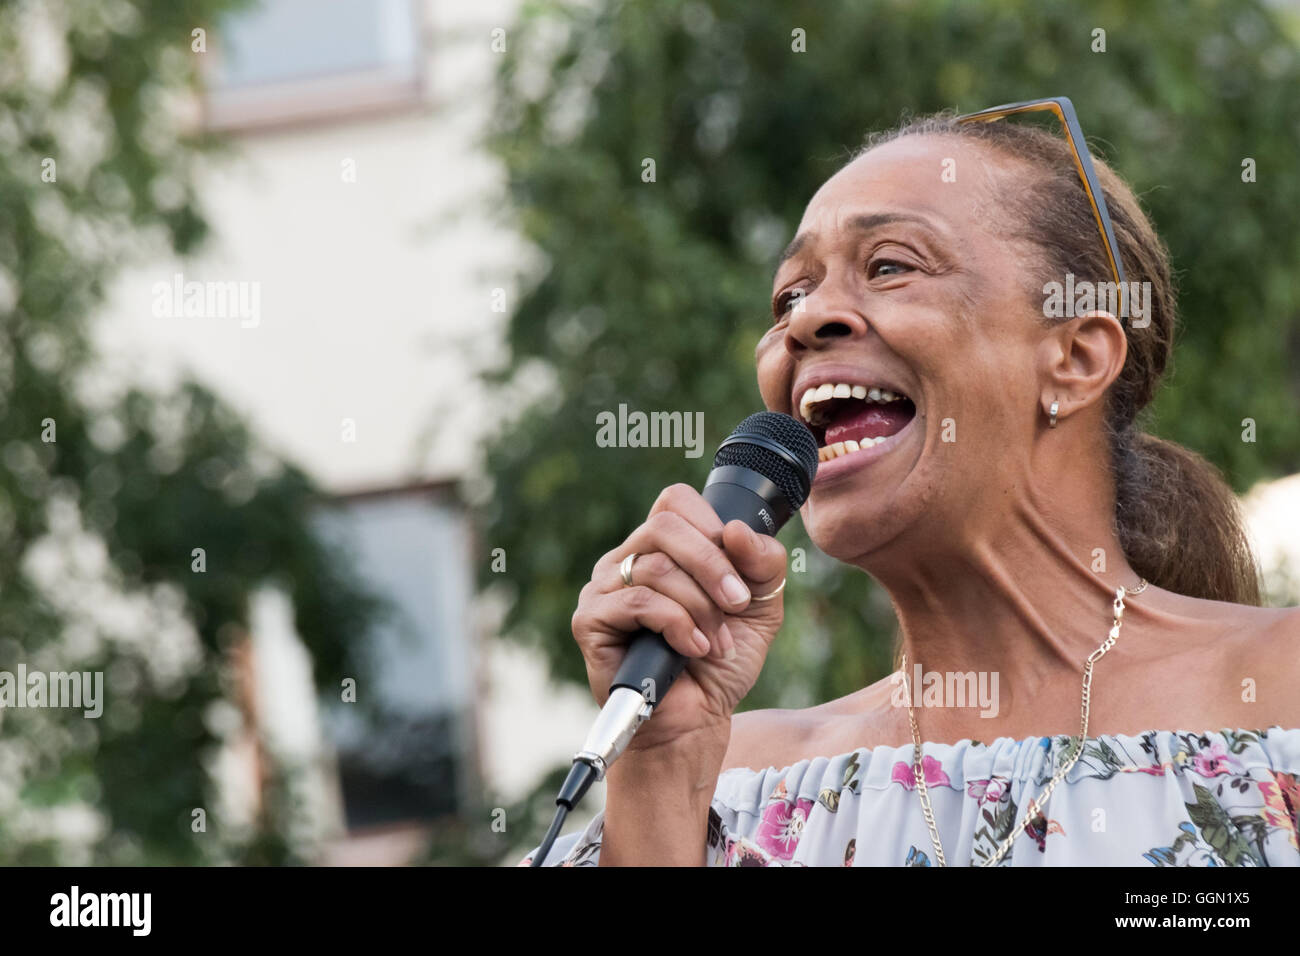 London, UK. 5th Aug, 2016. Stephanie Lightfoot-Bennett whose twin brother Leon Patterson was killed by police in - Stock Image